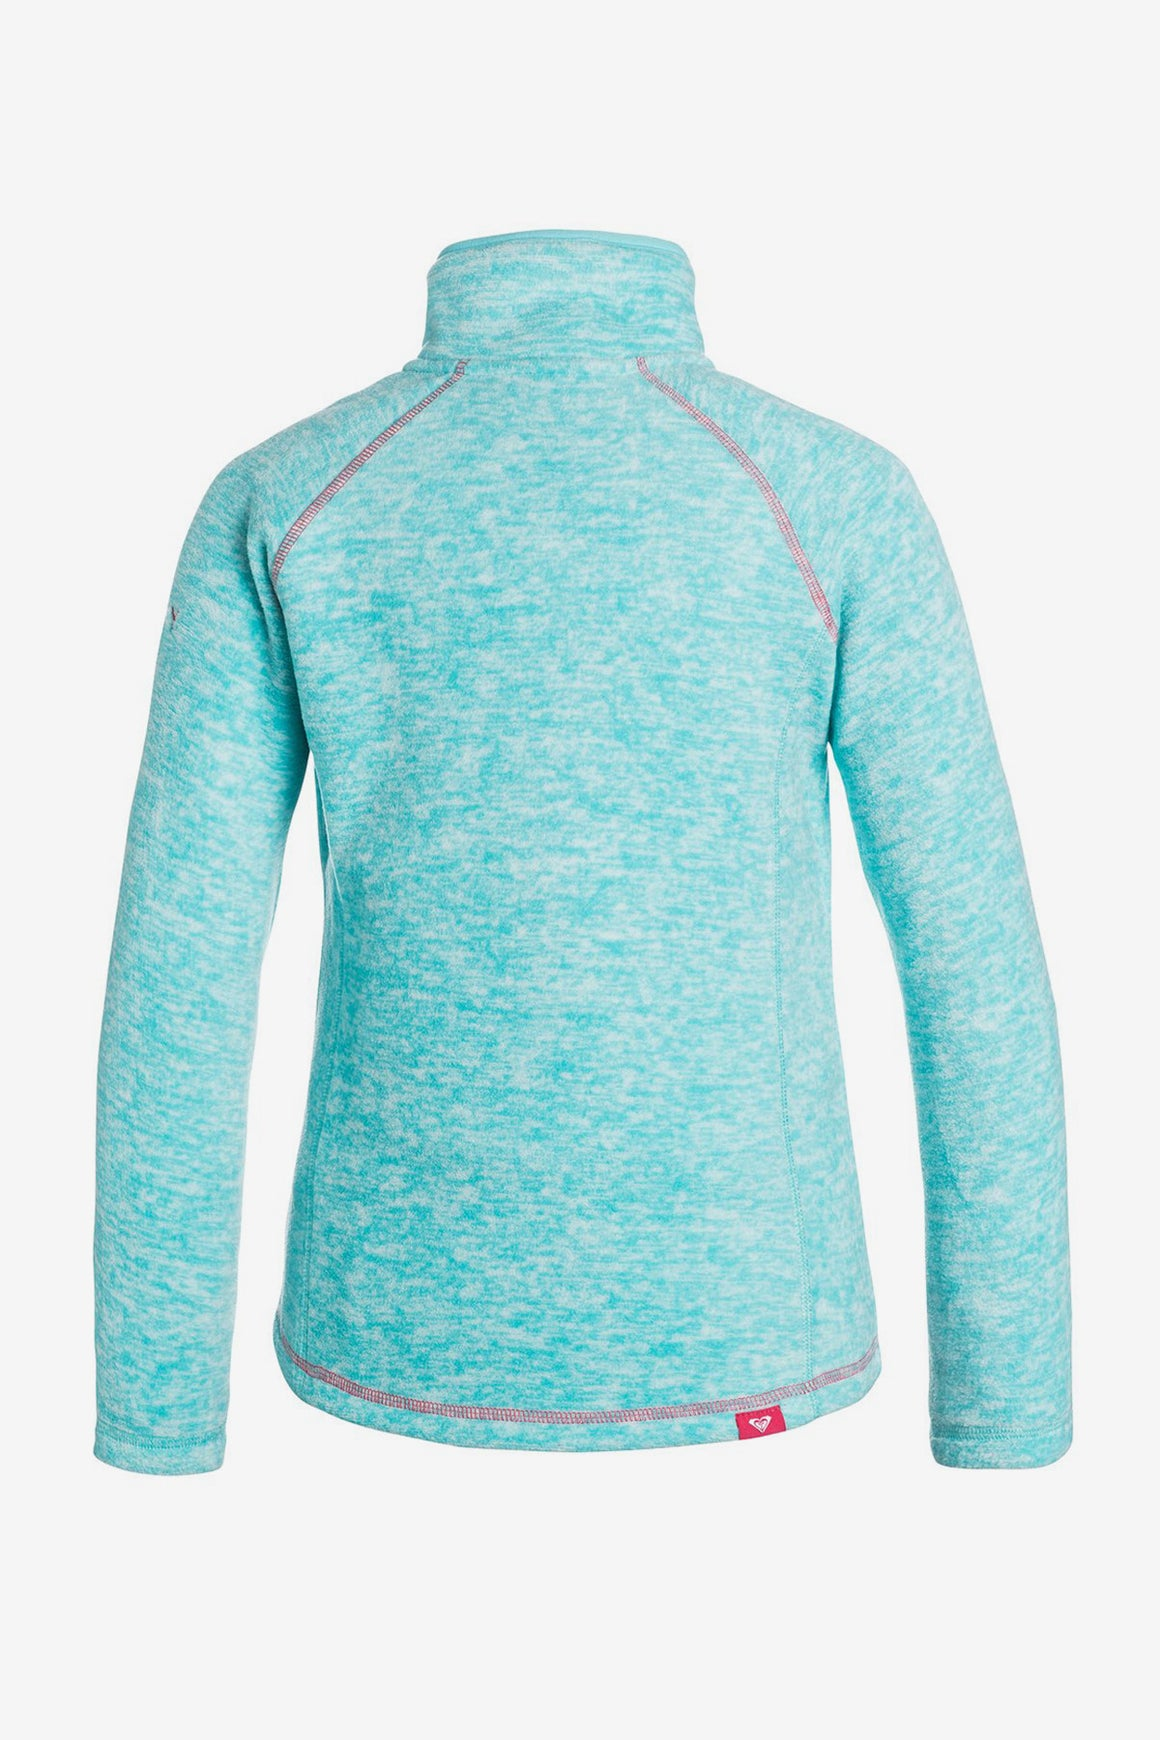 Roxy Harmony Zip Fleece - Blue Radiance